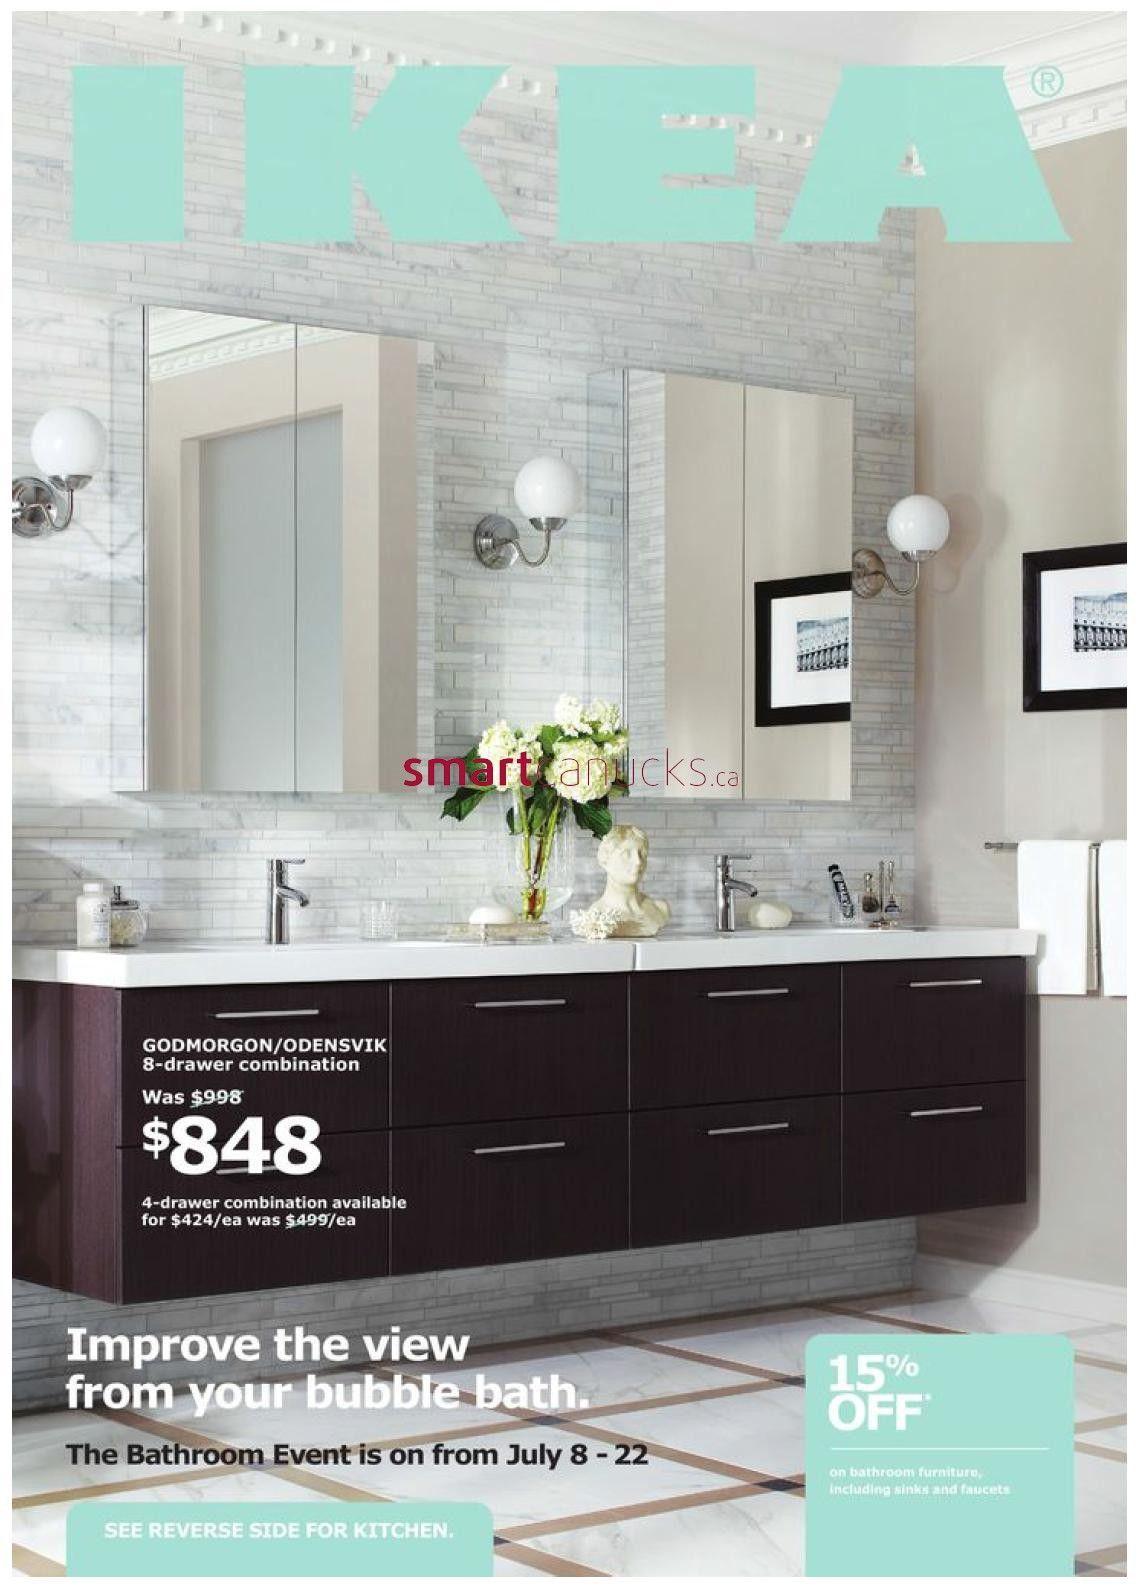 ikea godmorgon odensvik sink cabinets with four drawers and rh pinterest com